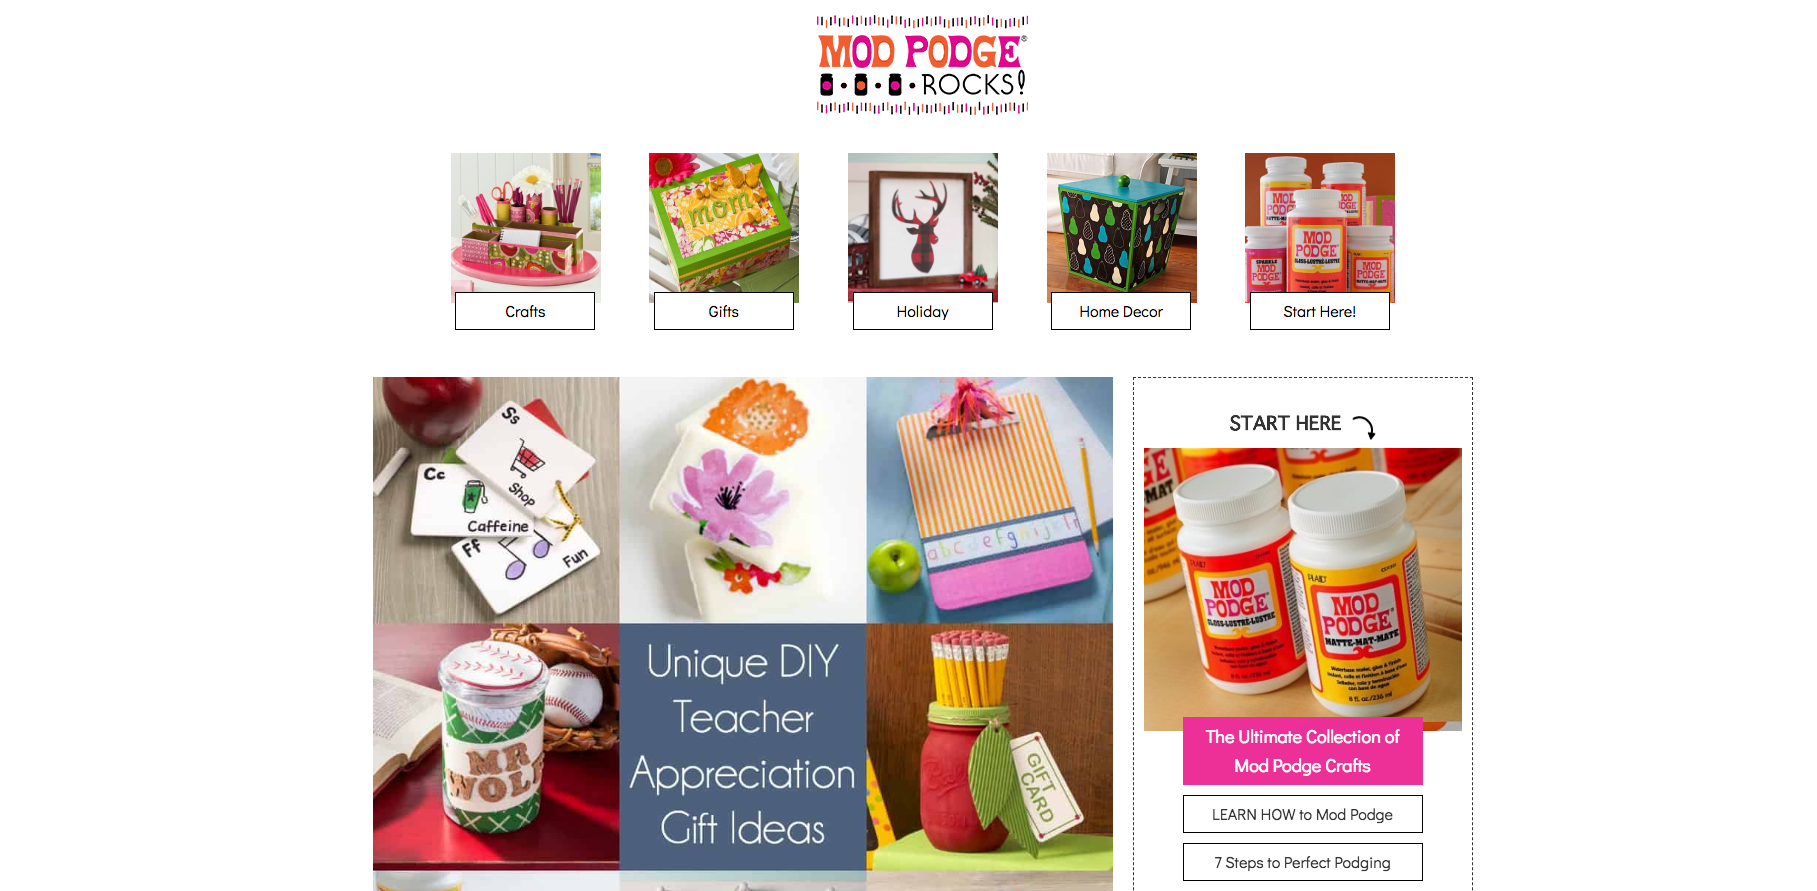 Mod Podge Rocks DIY Craft Blogs